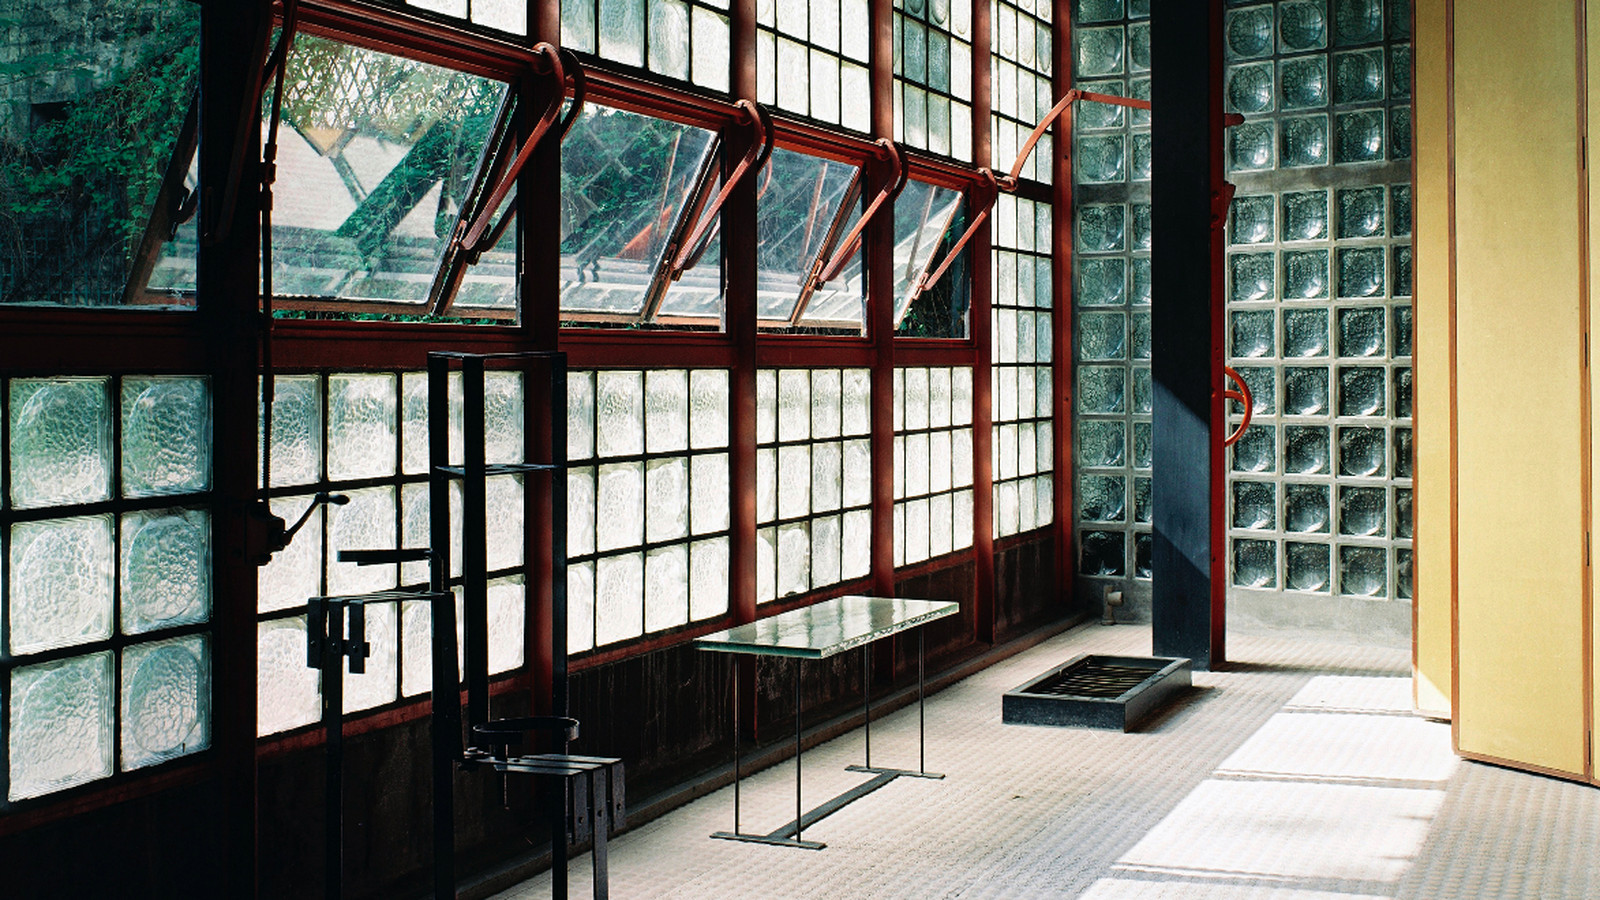 maison de verre the other glass house curbed. Black Bedroom Furniture Sets. Home Design Ideas